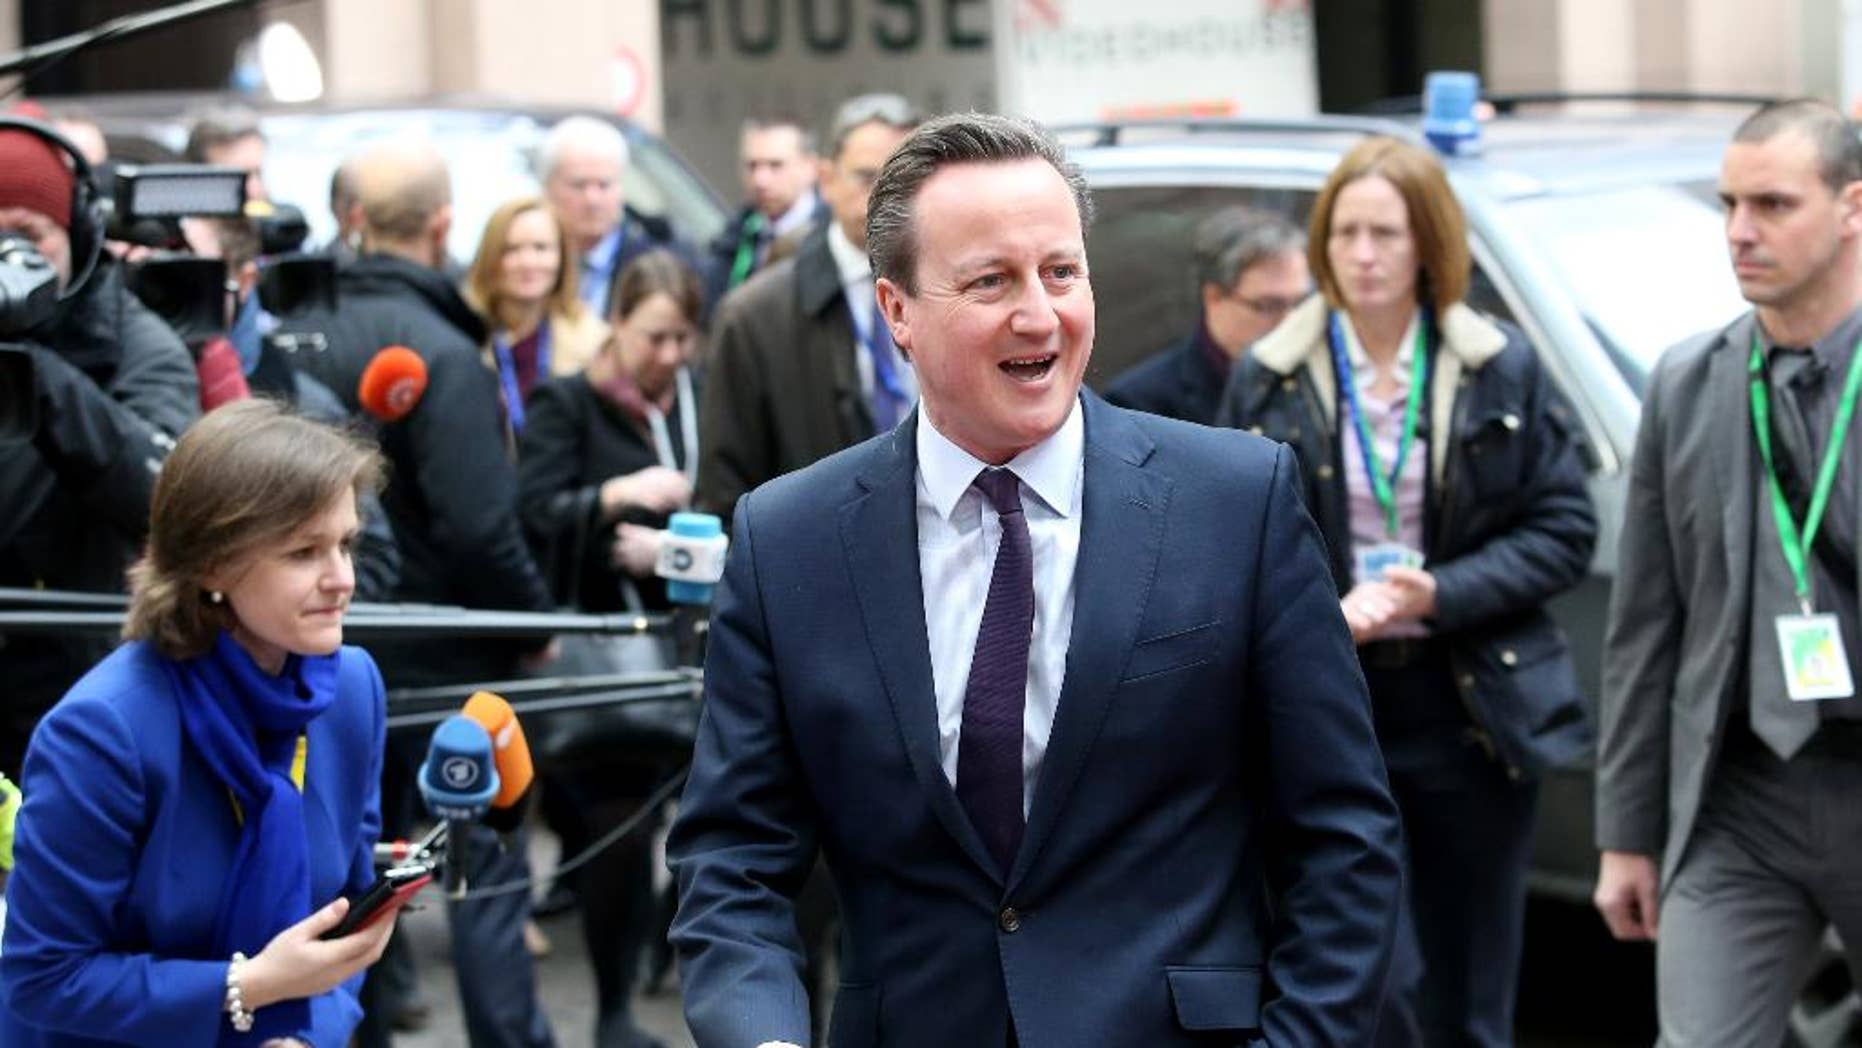 FILE- In this March 7, 2016 file photo, British Prime Minister David Cameron arrives for an EU summit at the EU Council building in Brussels. Cameron said Wednesday May 4, 2016, advocates of leaving the European Union have not thought through the impact it would have on the economy. (AP Photo/Francois Walschaerts, File)